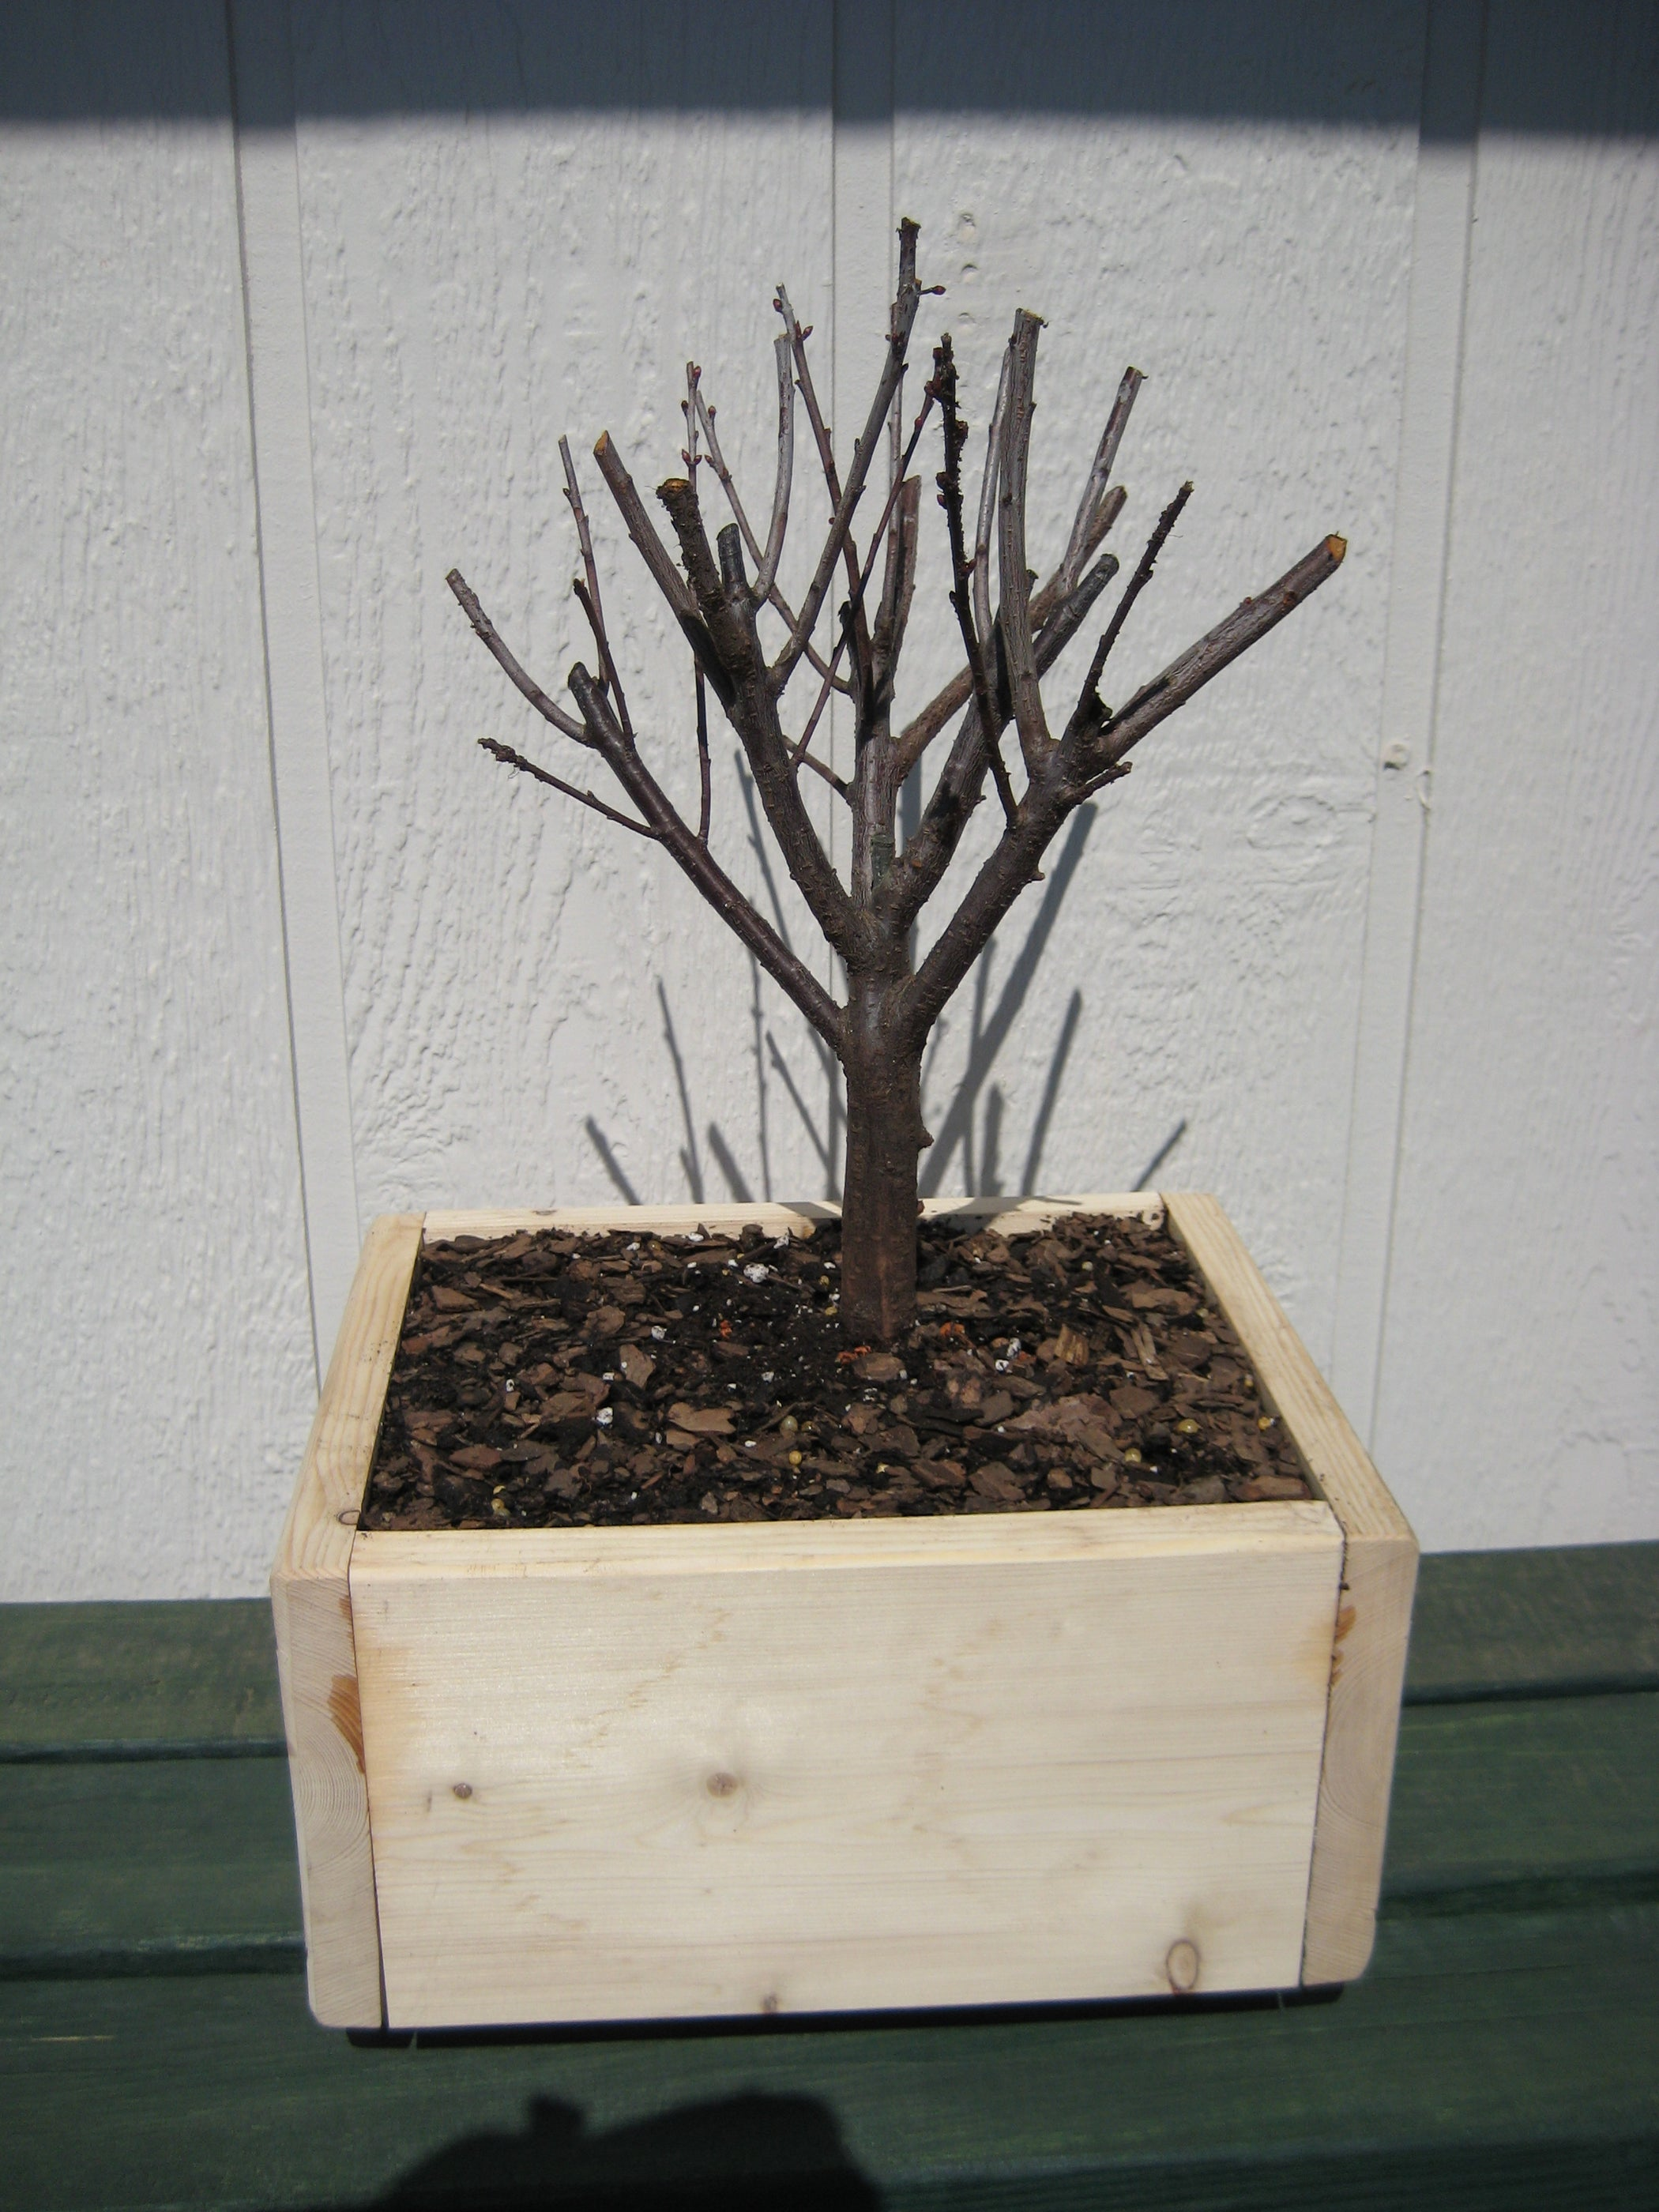 Groovy Starting A Bonsai 9 Steps With Pictures Wiring Digital Resources Funapmognl